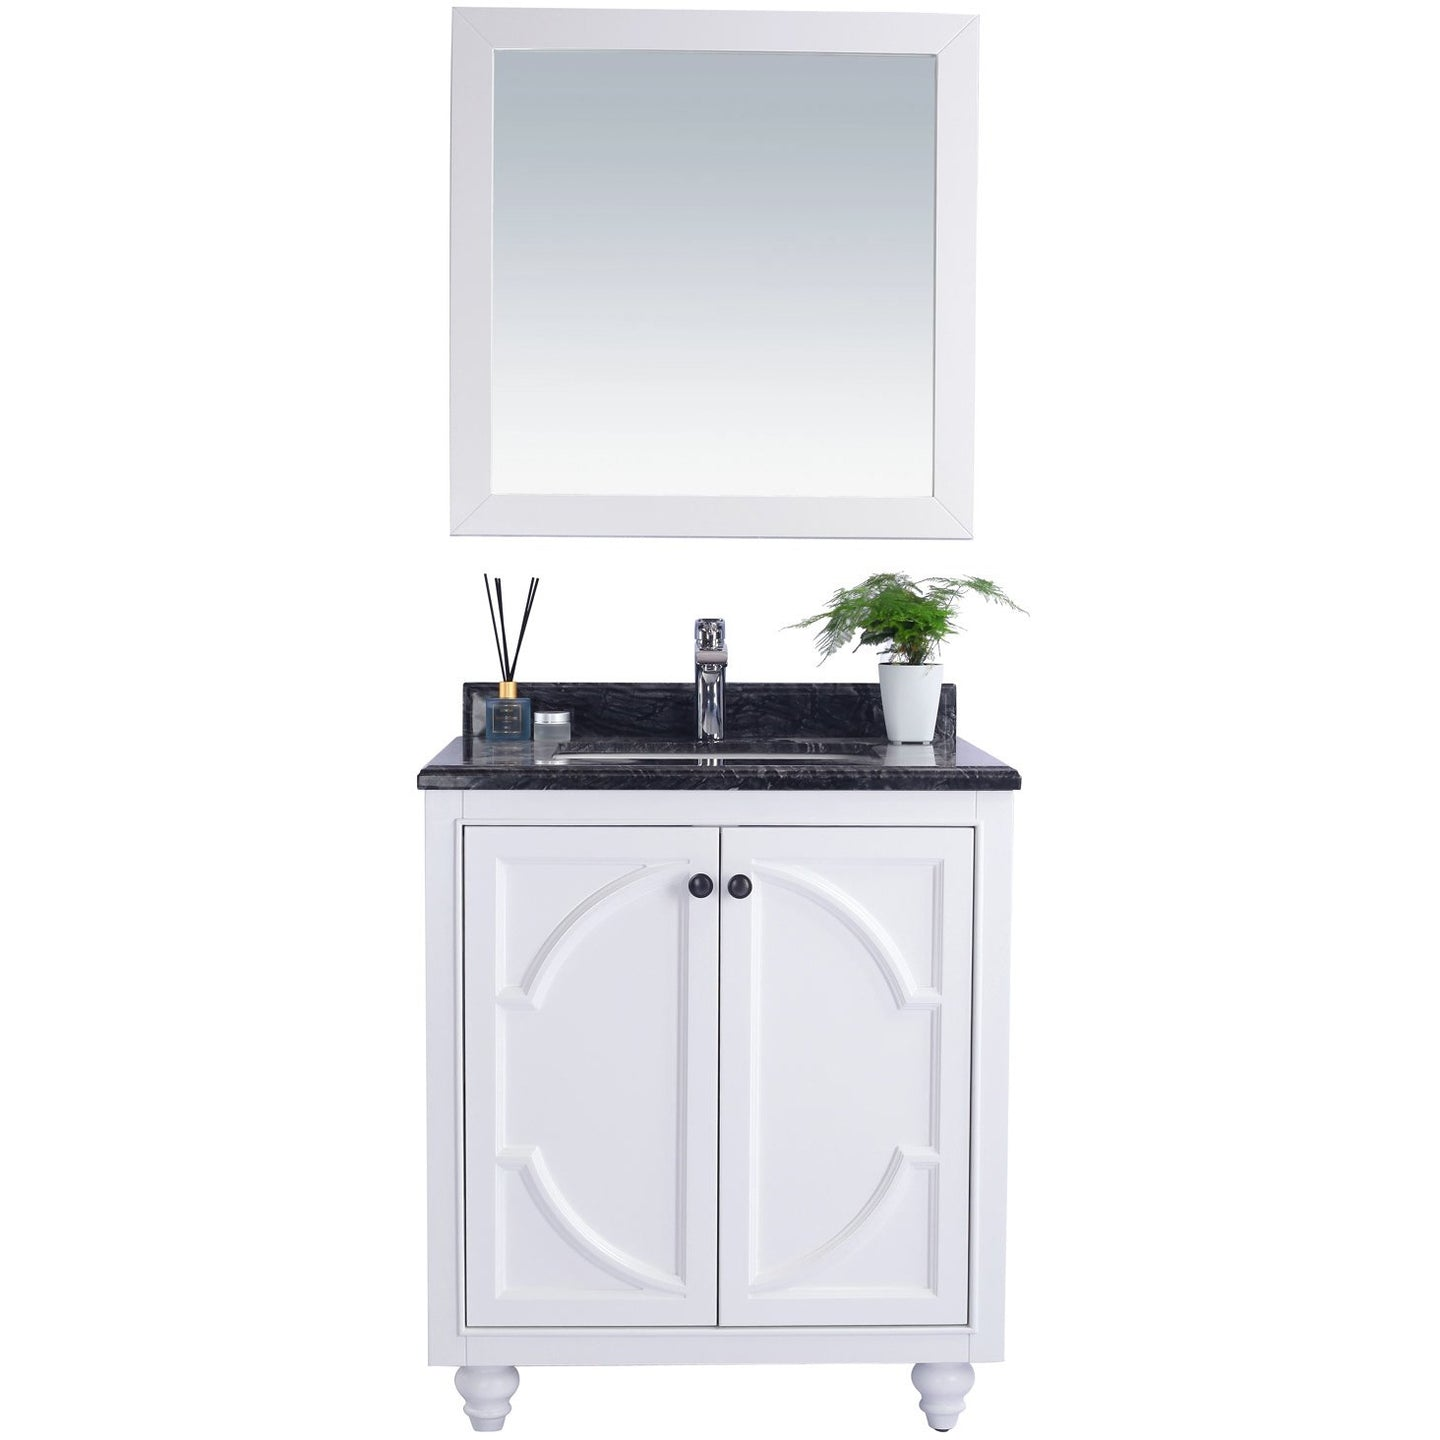 Odyssey - 30 - White Cabinet + Black Wood Counter by Laviva